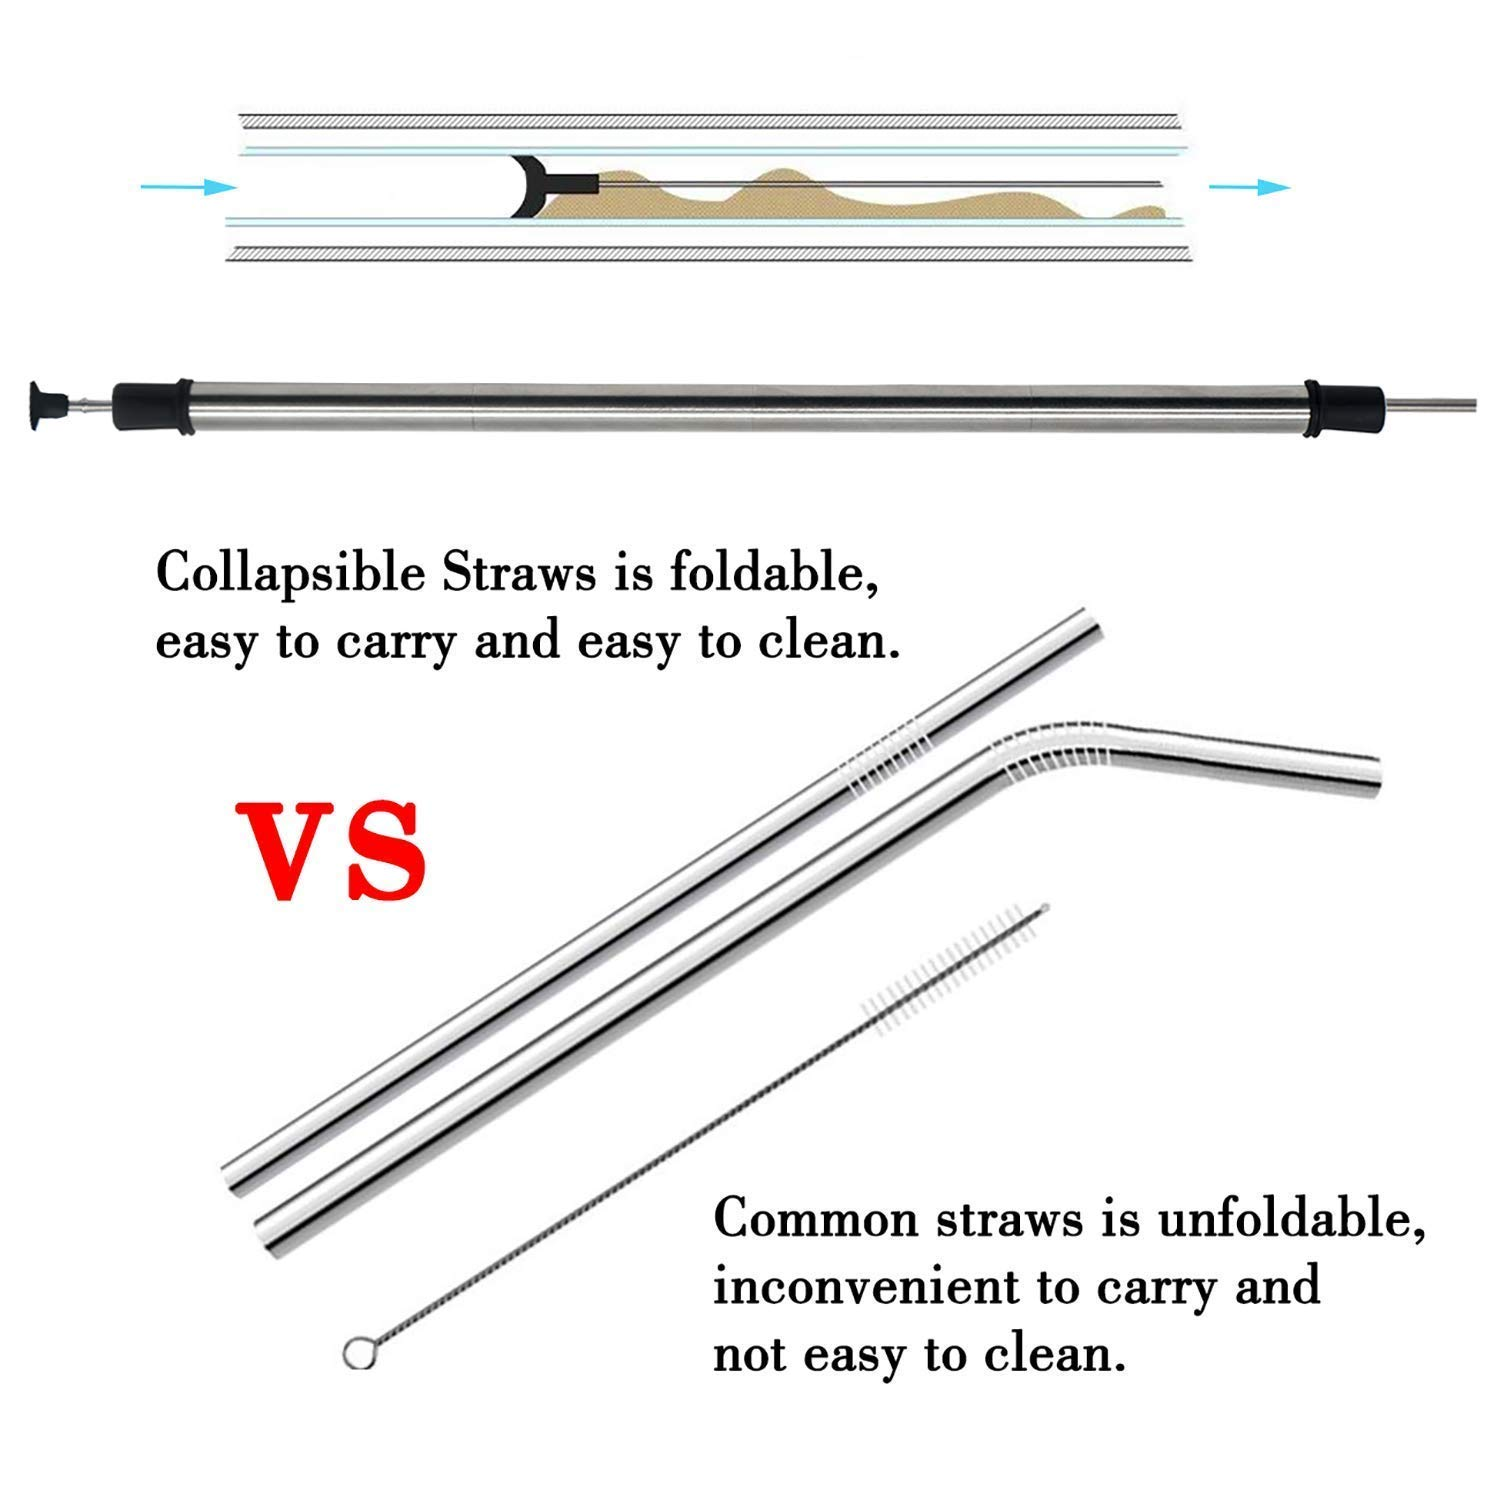 2 Packs Collapsible Reusable Straw, Gocheer Stainless Steel and Food-Grade Silicone Portable Set, with Hard Case Holder and Cleaning Brush, for Party, Travel, Household, Outdoor, etc.